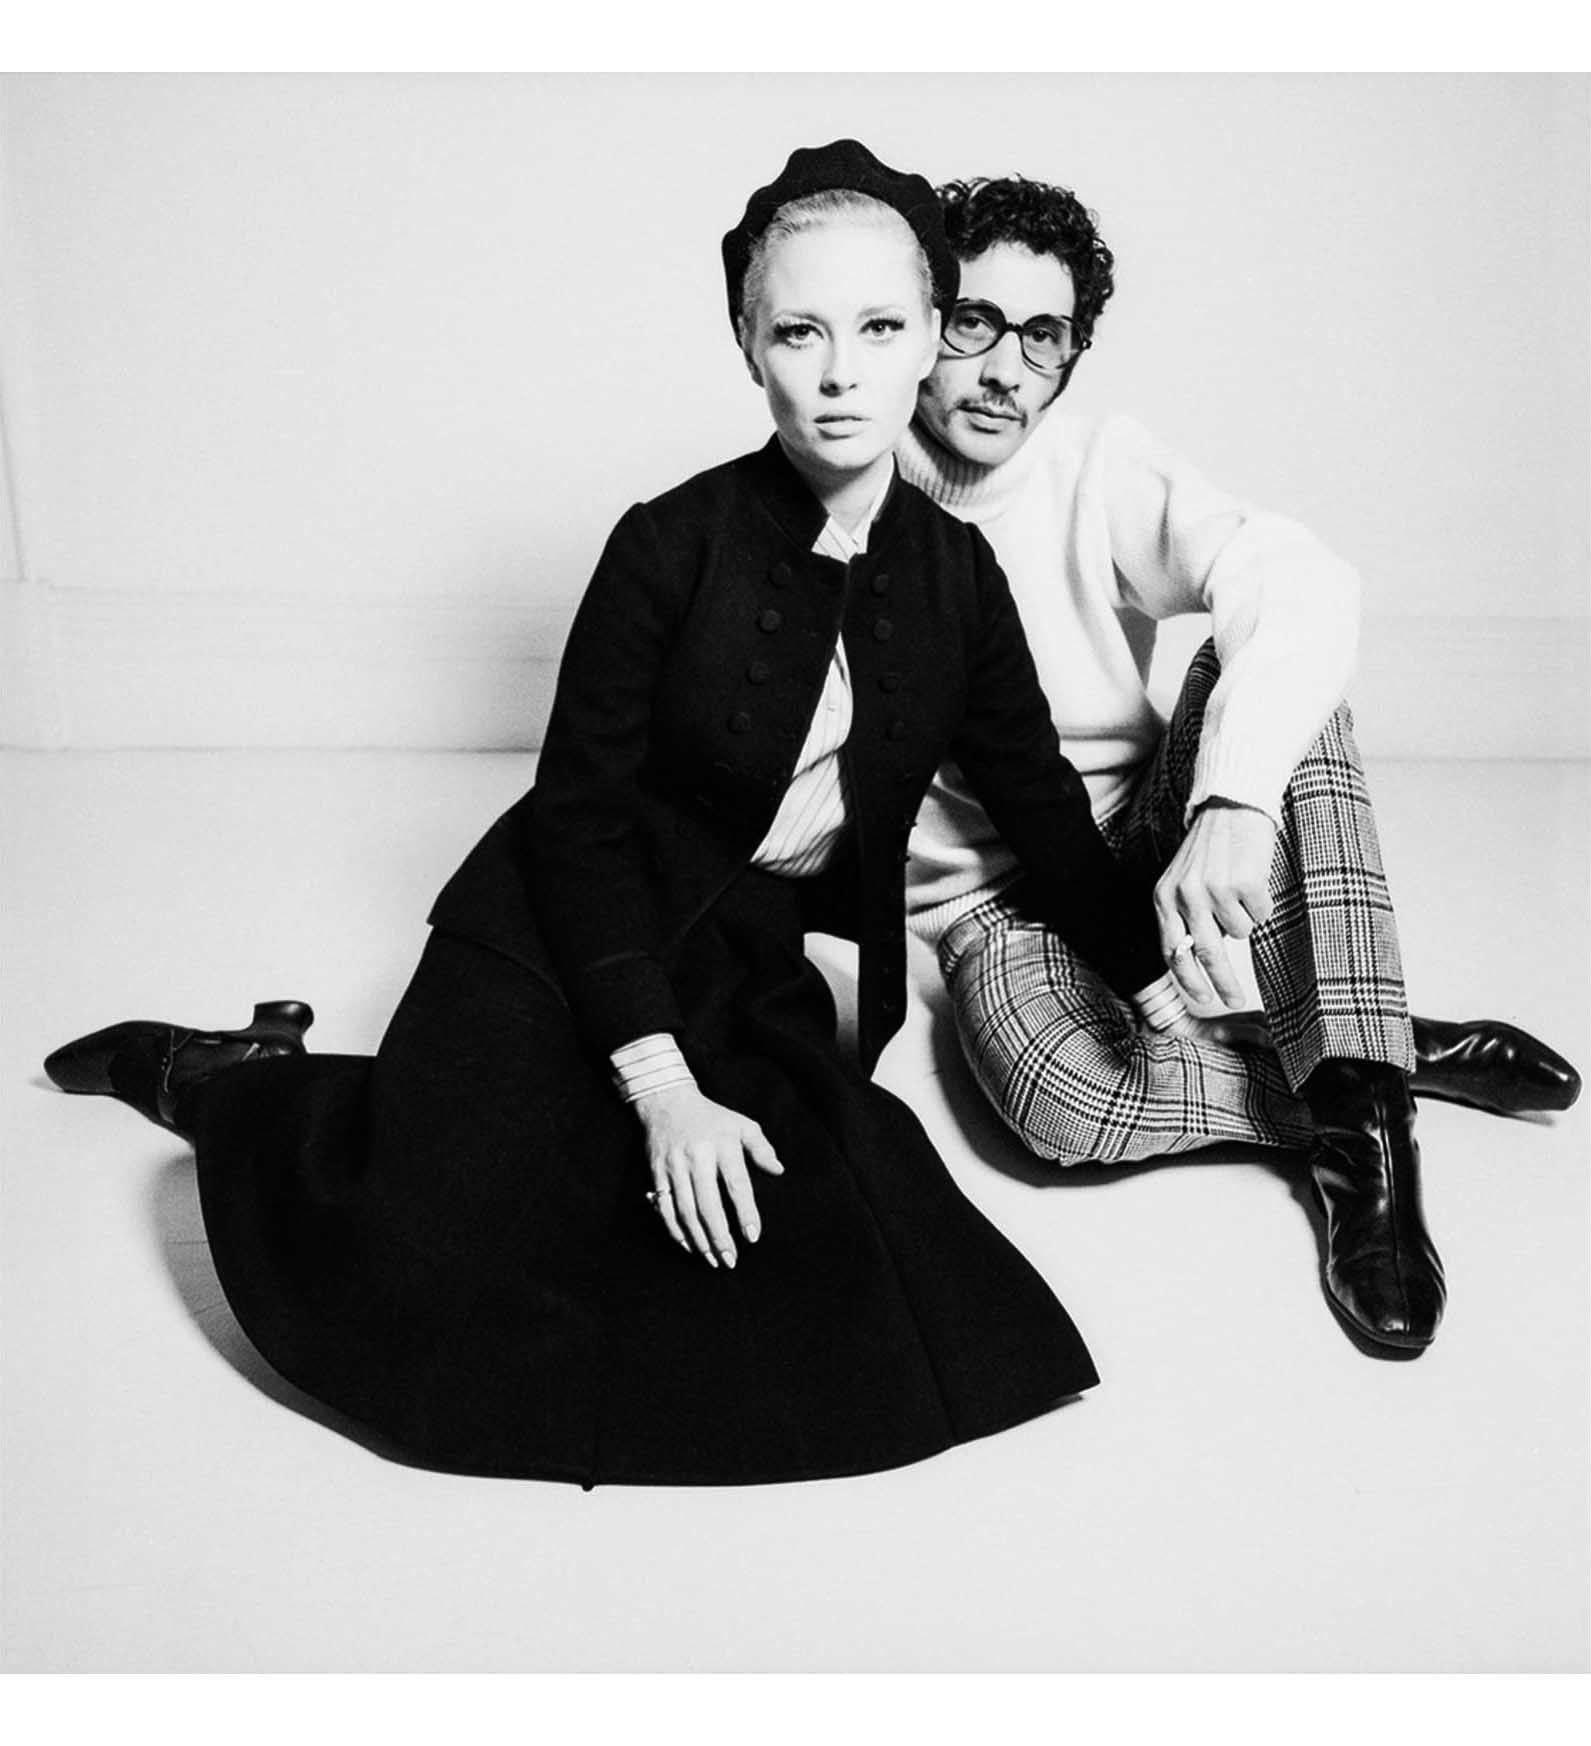 Faye Dunaway and Jerry Schatzberg. Photo by Terence Donovan for the Daily Express newspaper, November 1967.